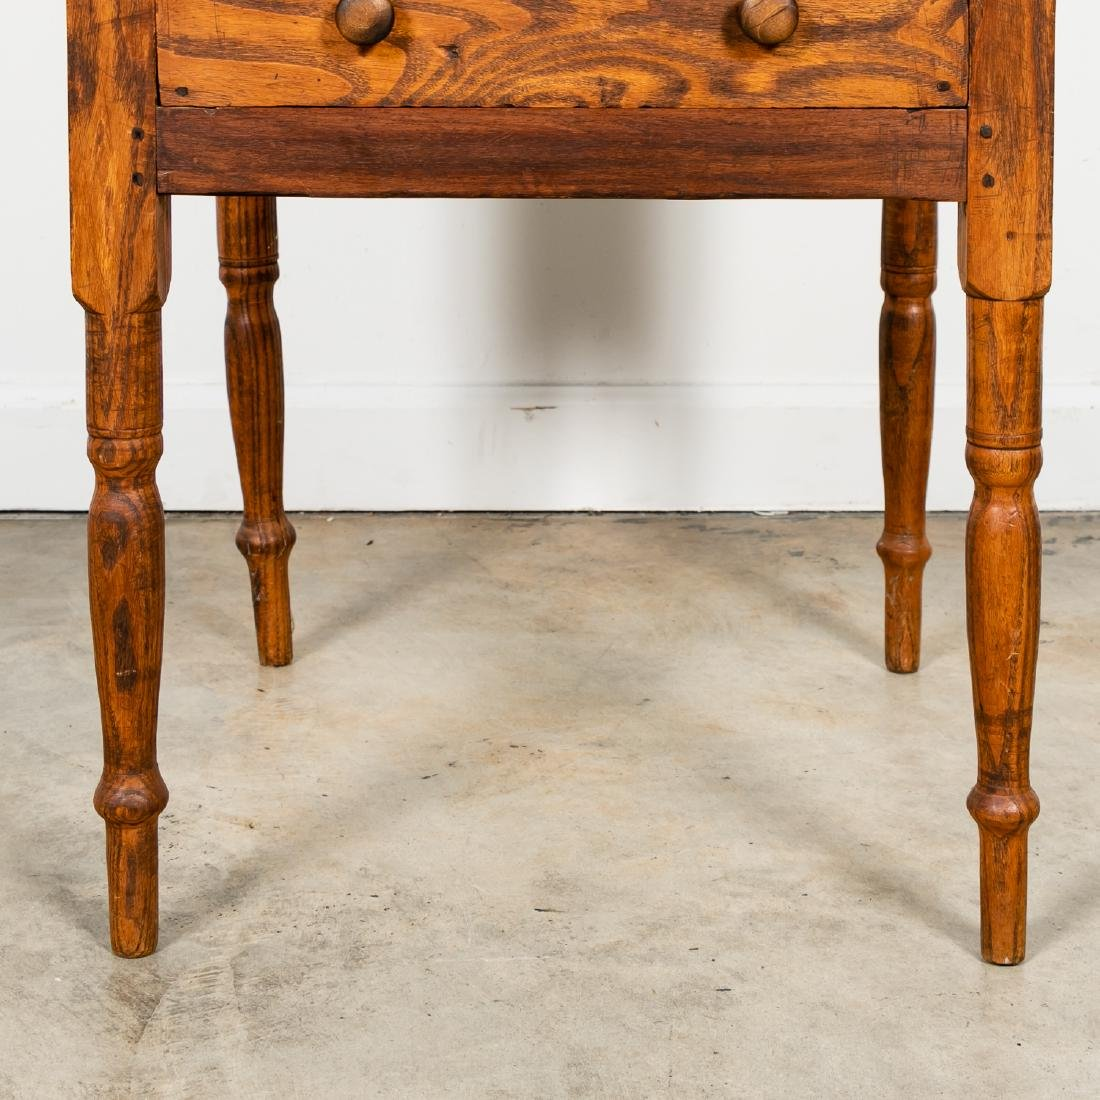 Early American Country Oak SideTable - 7